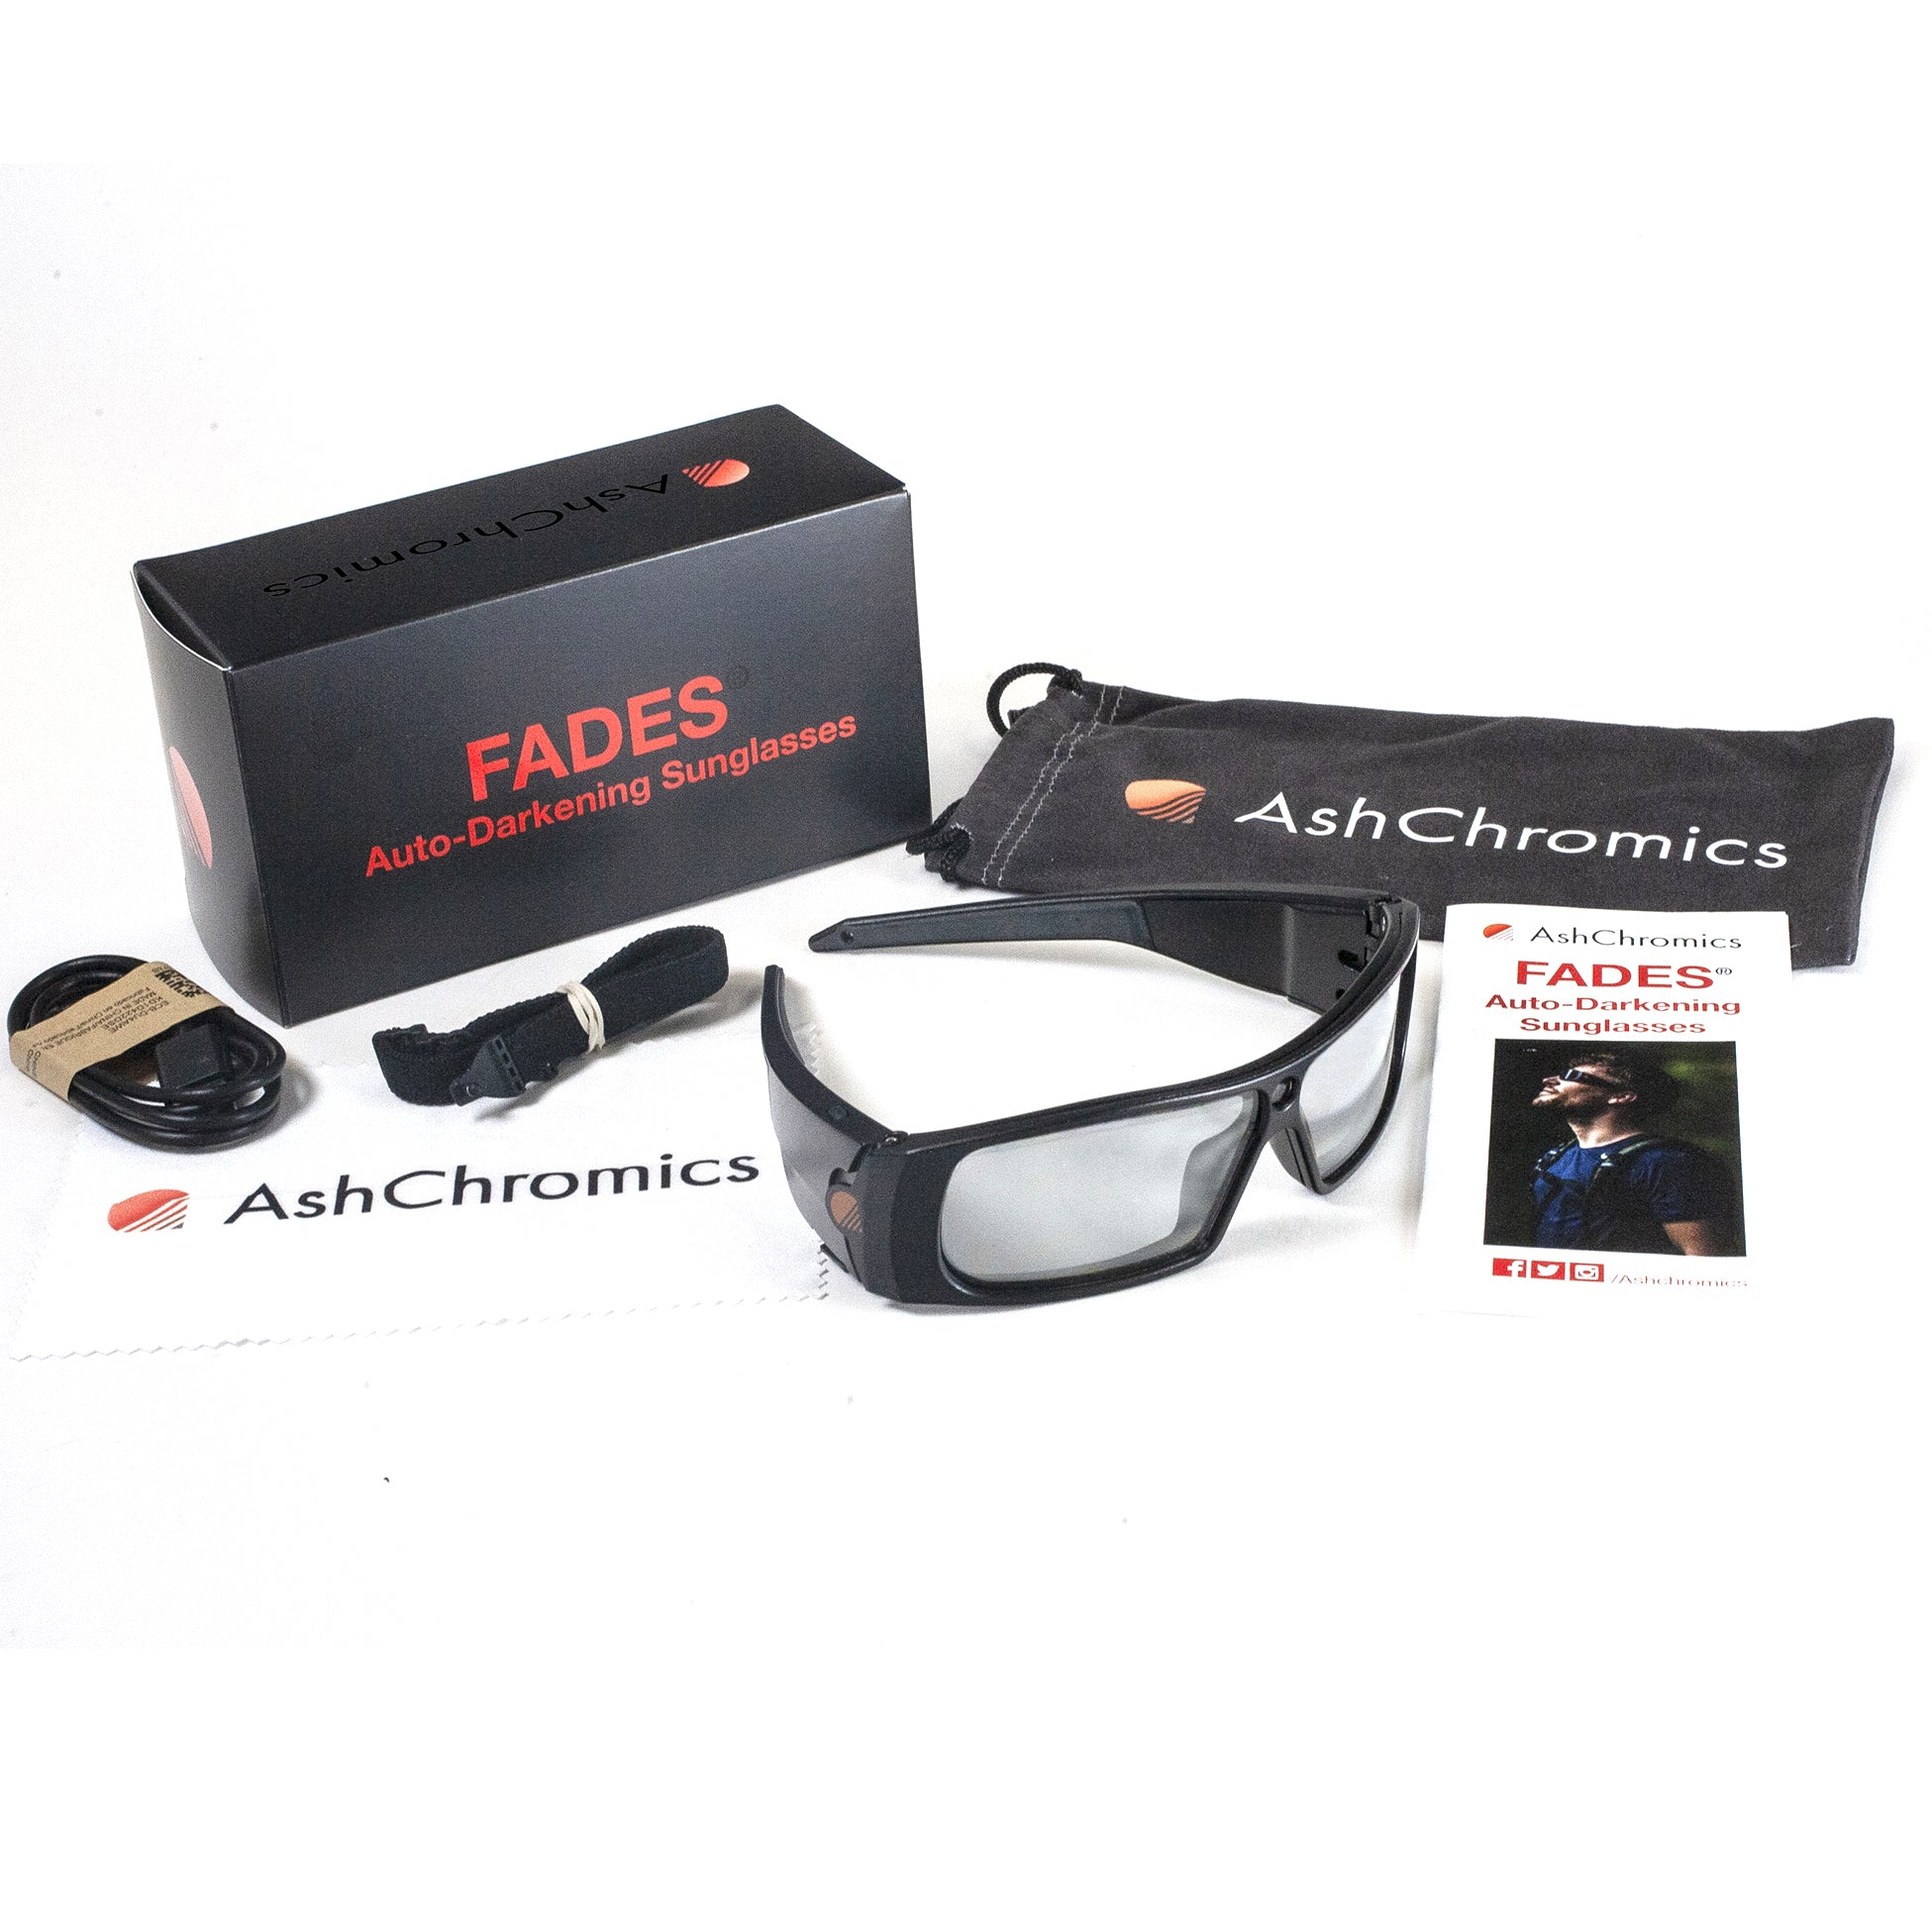 Fades Auto Darkening Sunglasses Package